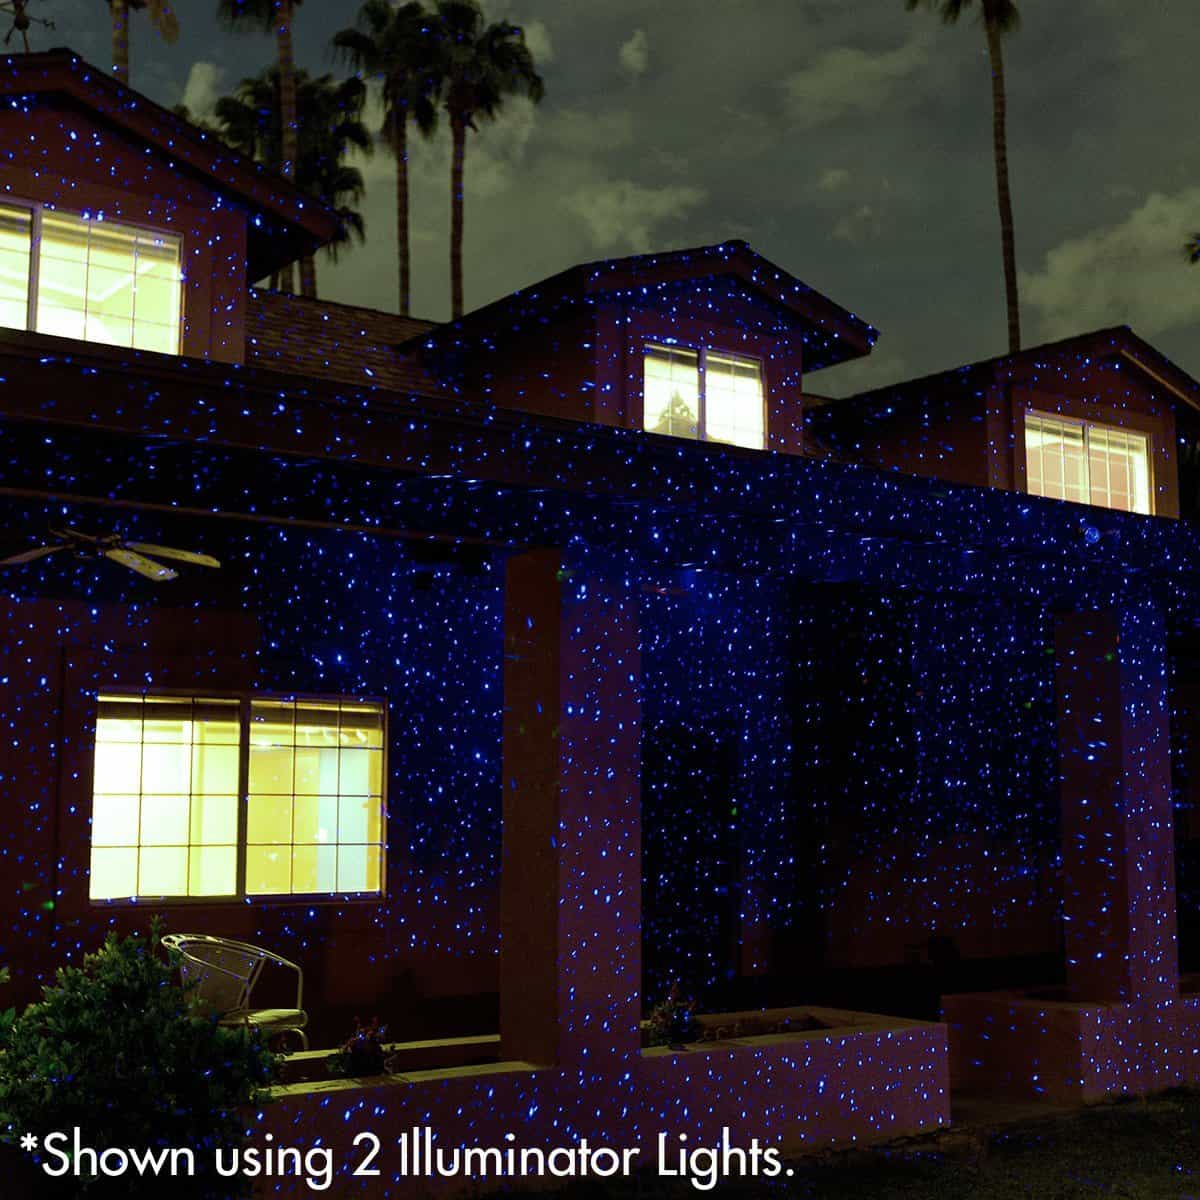 Sparkle Magic Illuminator Laser Light  Funky House Design